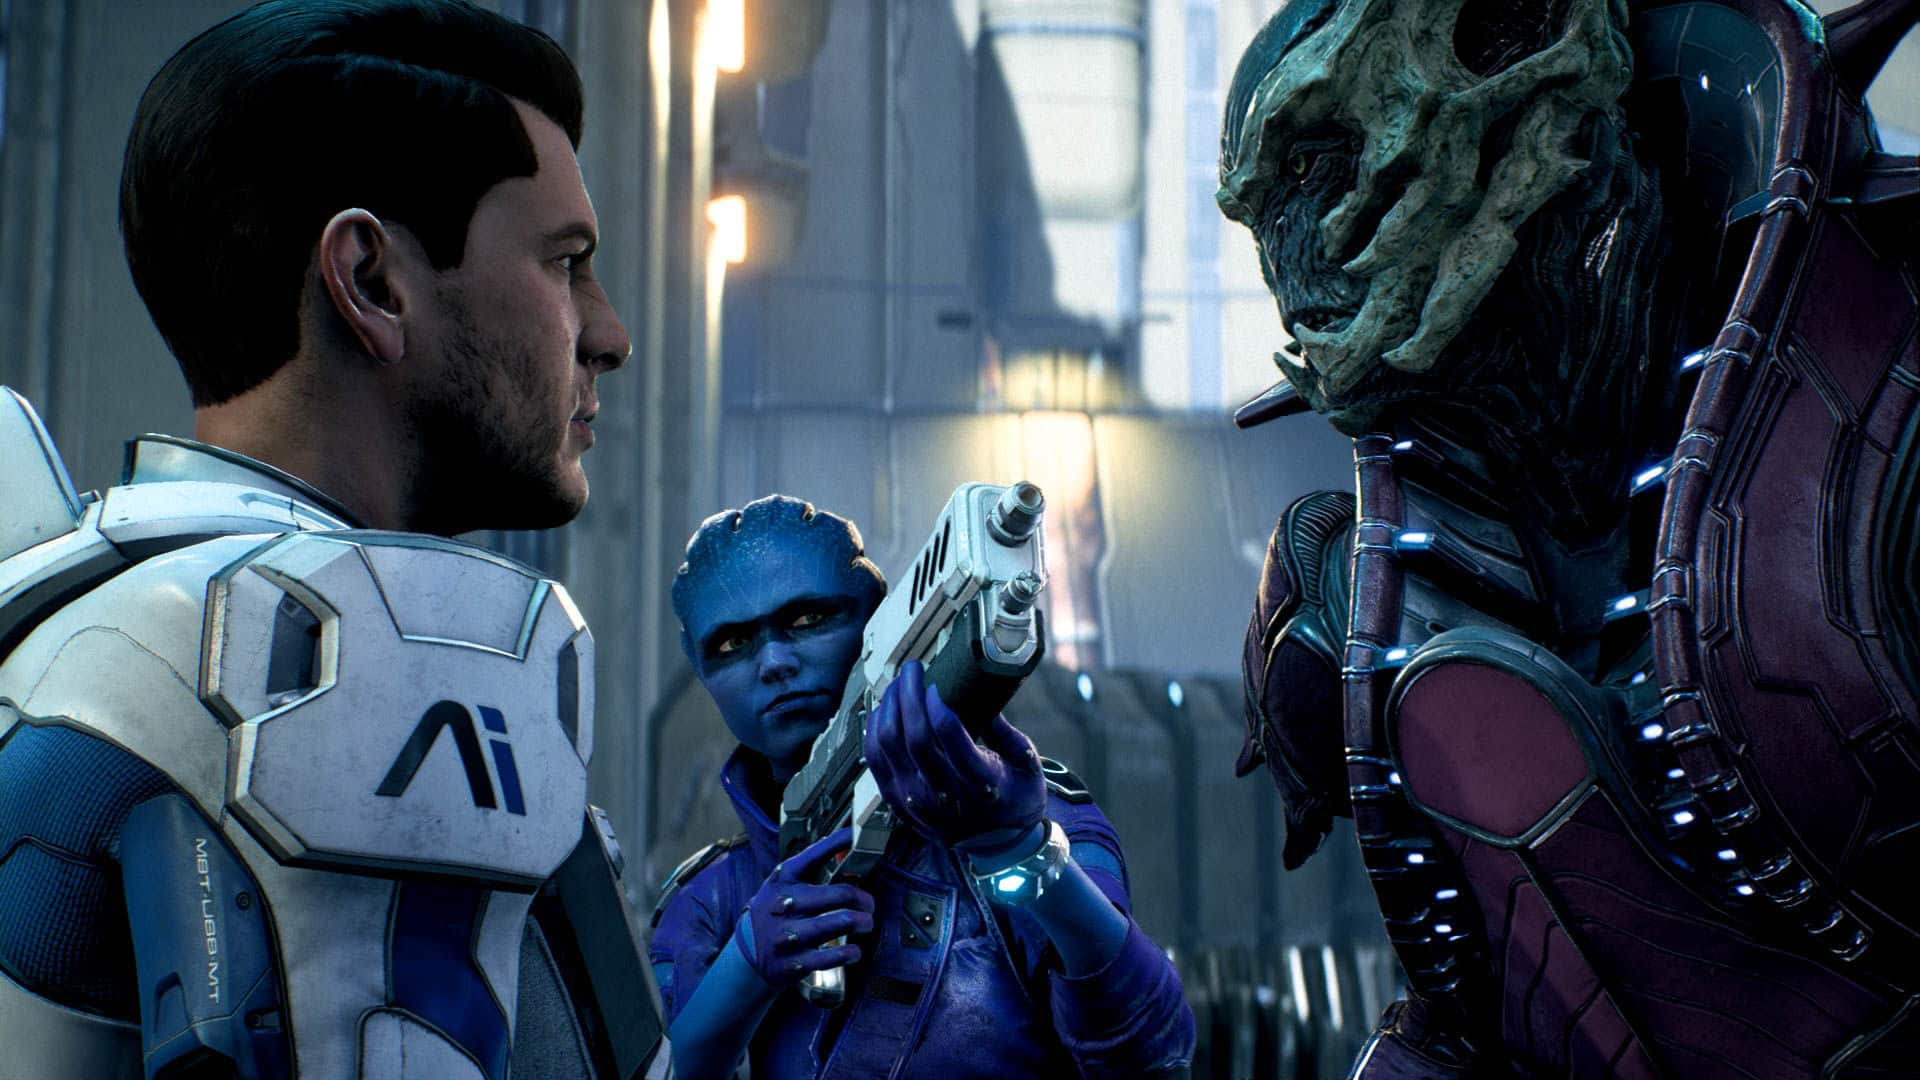 Mass Effect: Andromeda BioWare Montreal storytelling tropes subverted colonization and important culture choices